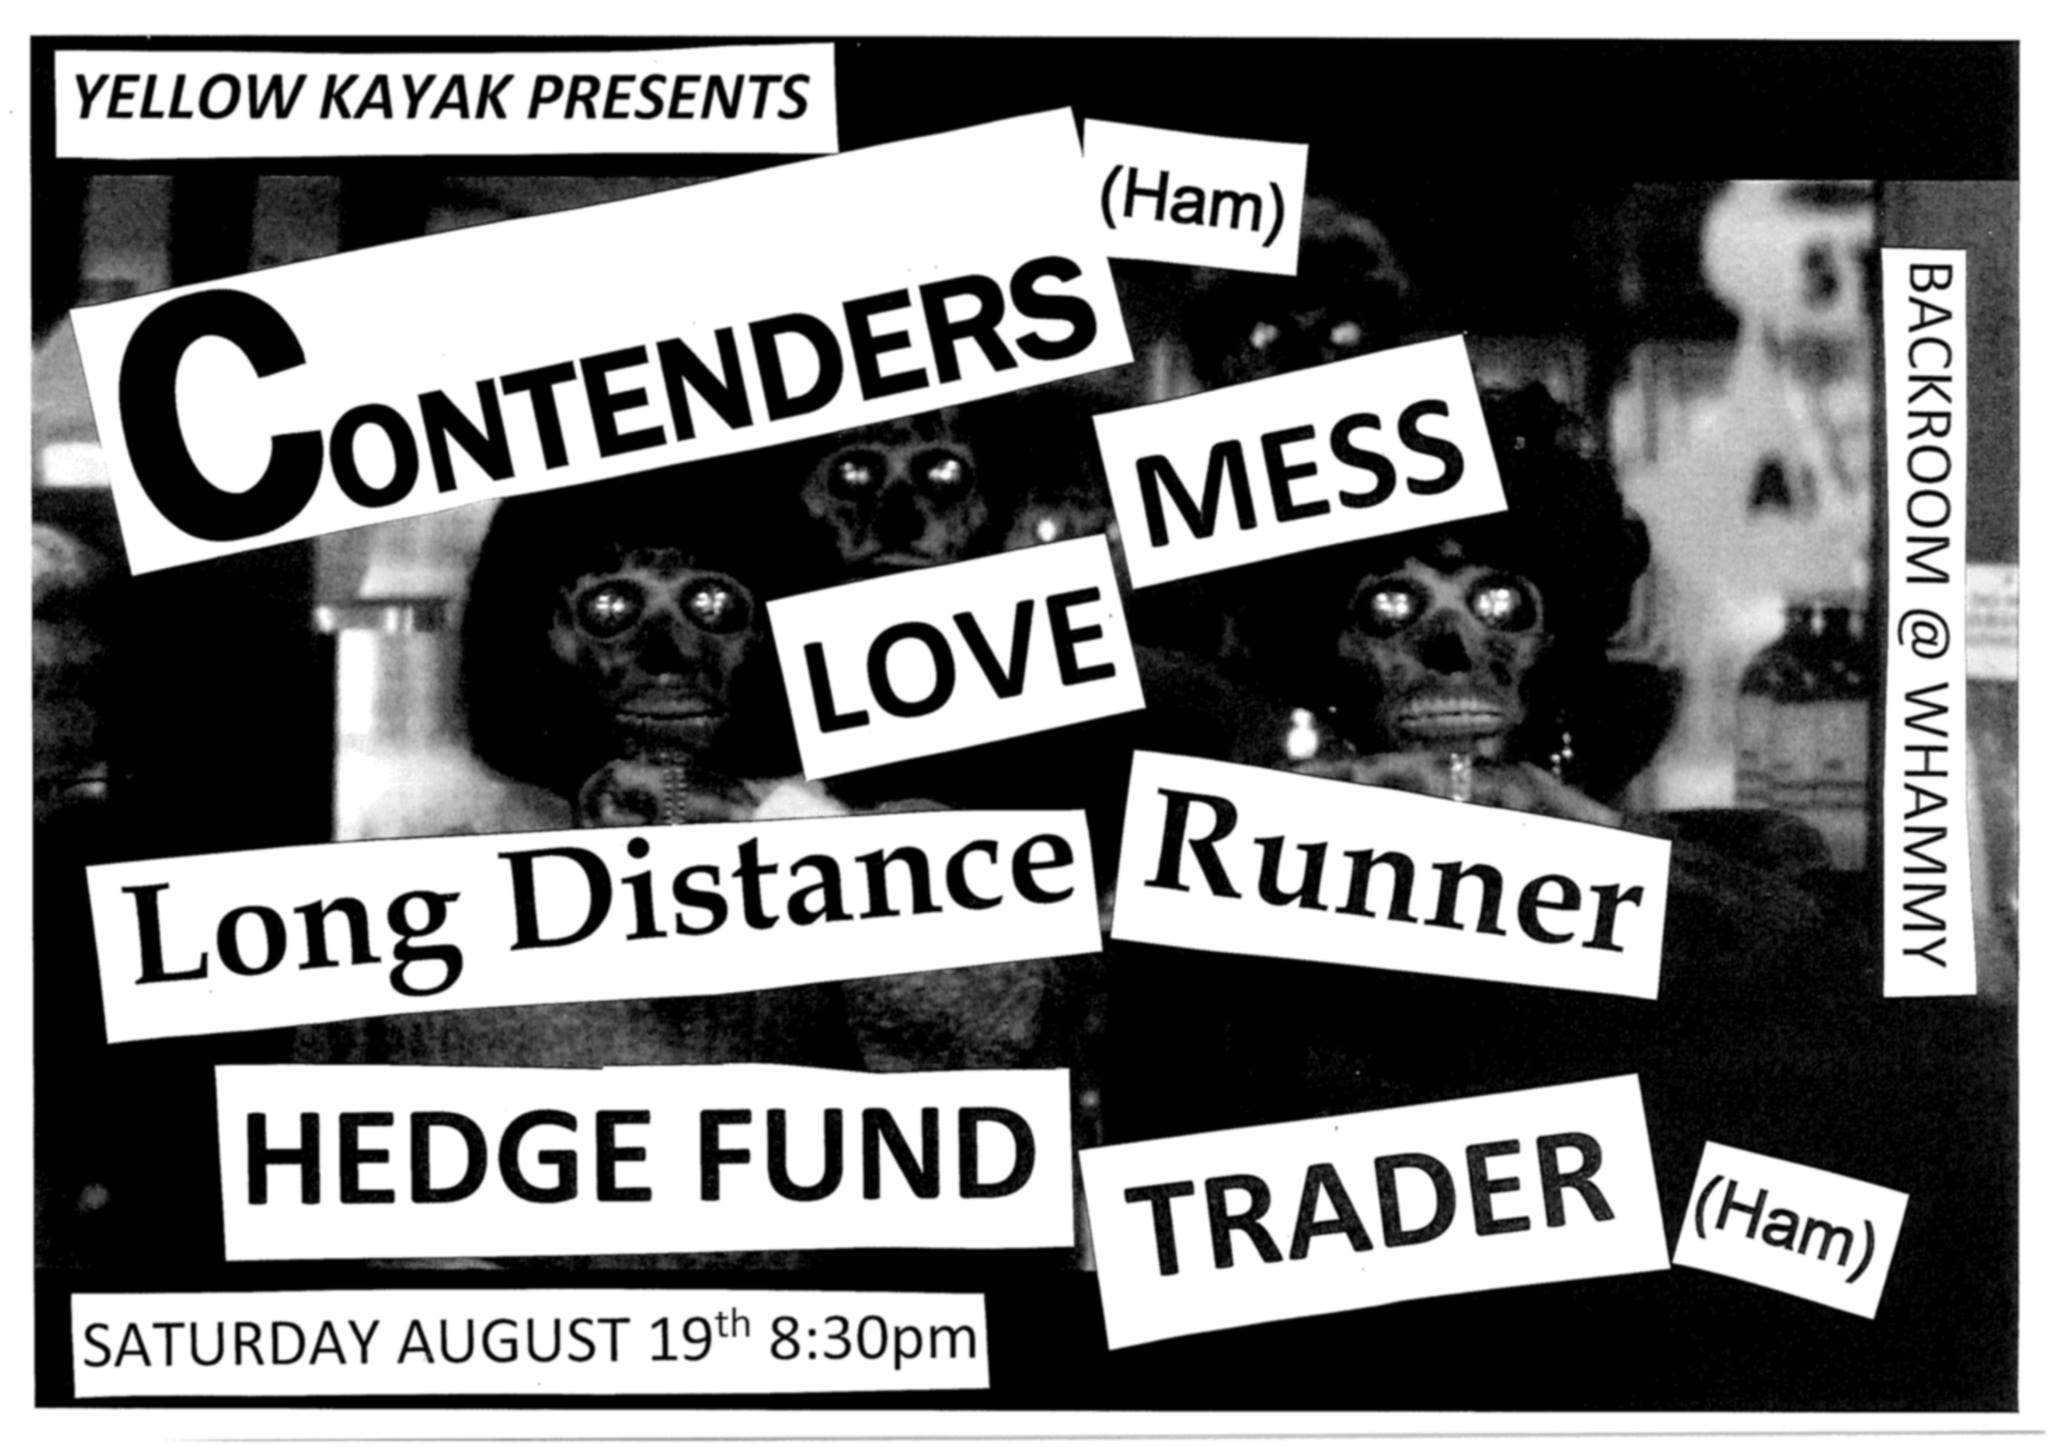 Contenders, Love Mess, Long Distance Runner, and Hedge Fund Trader